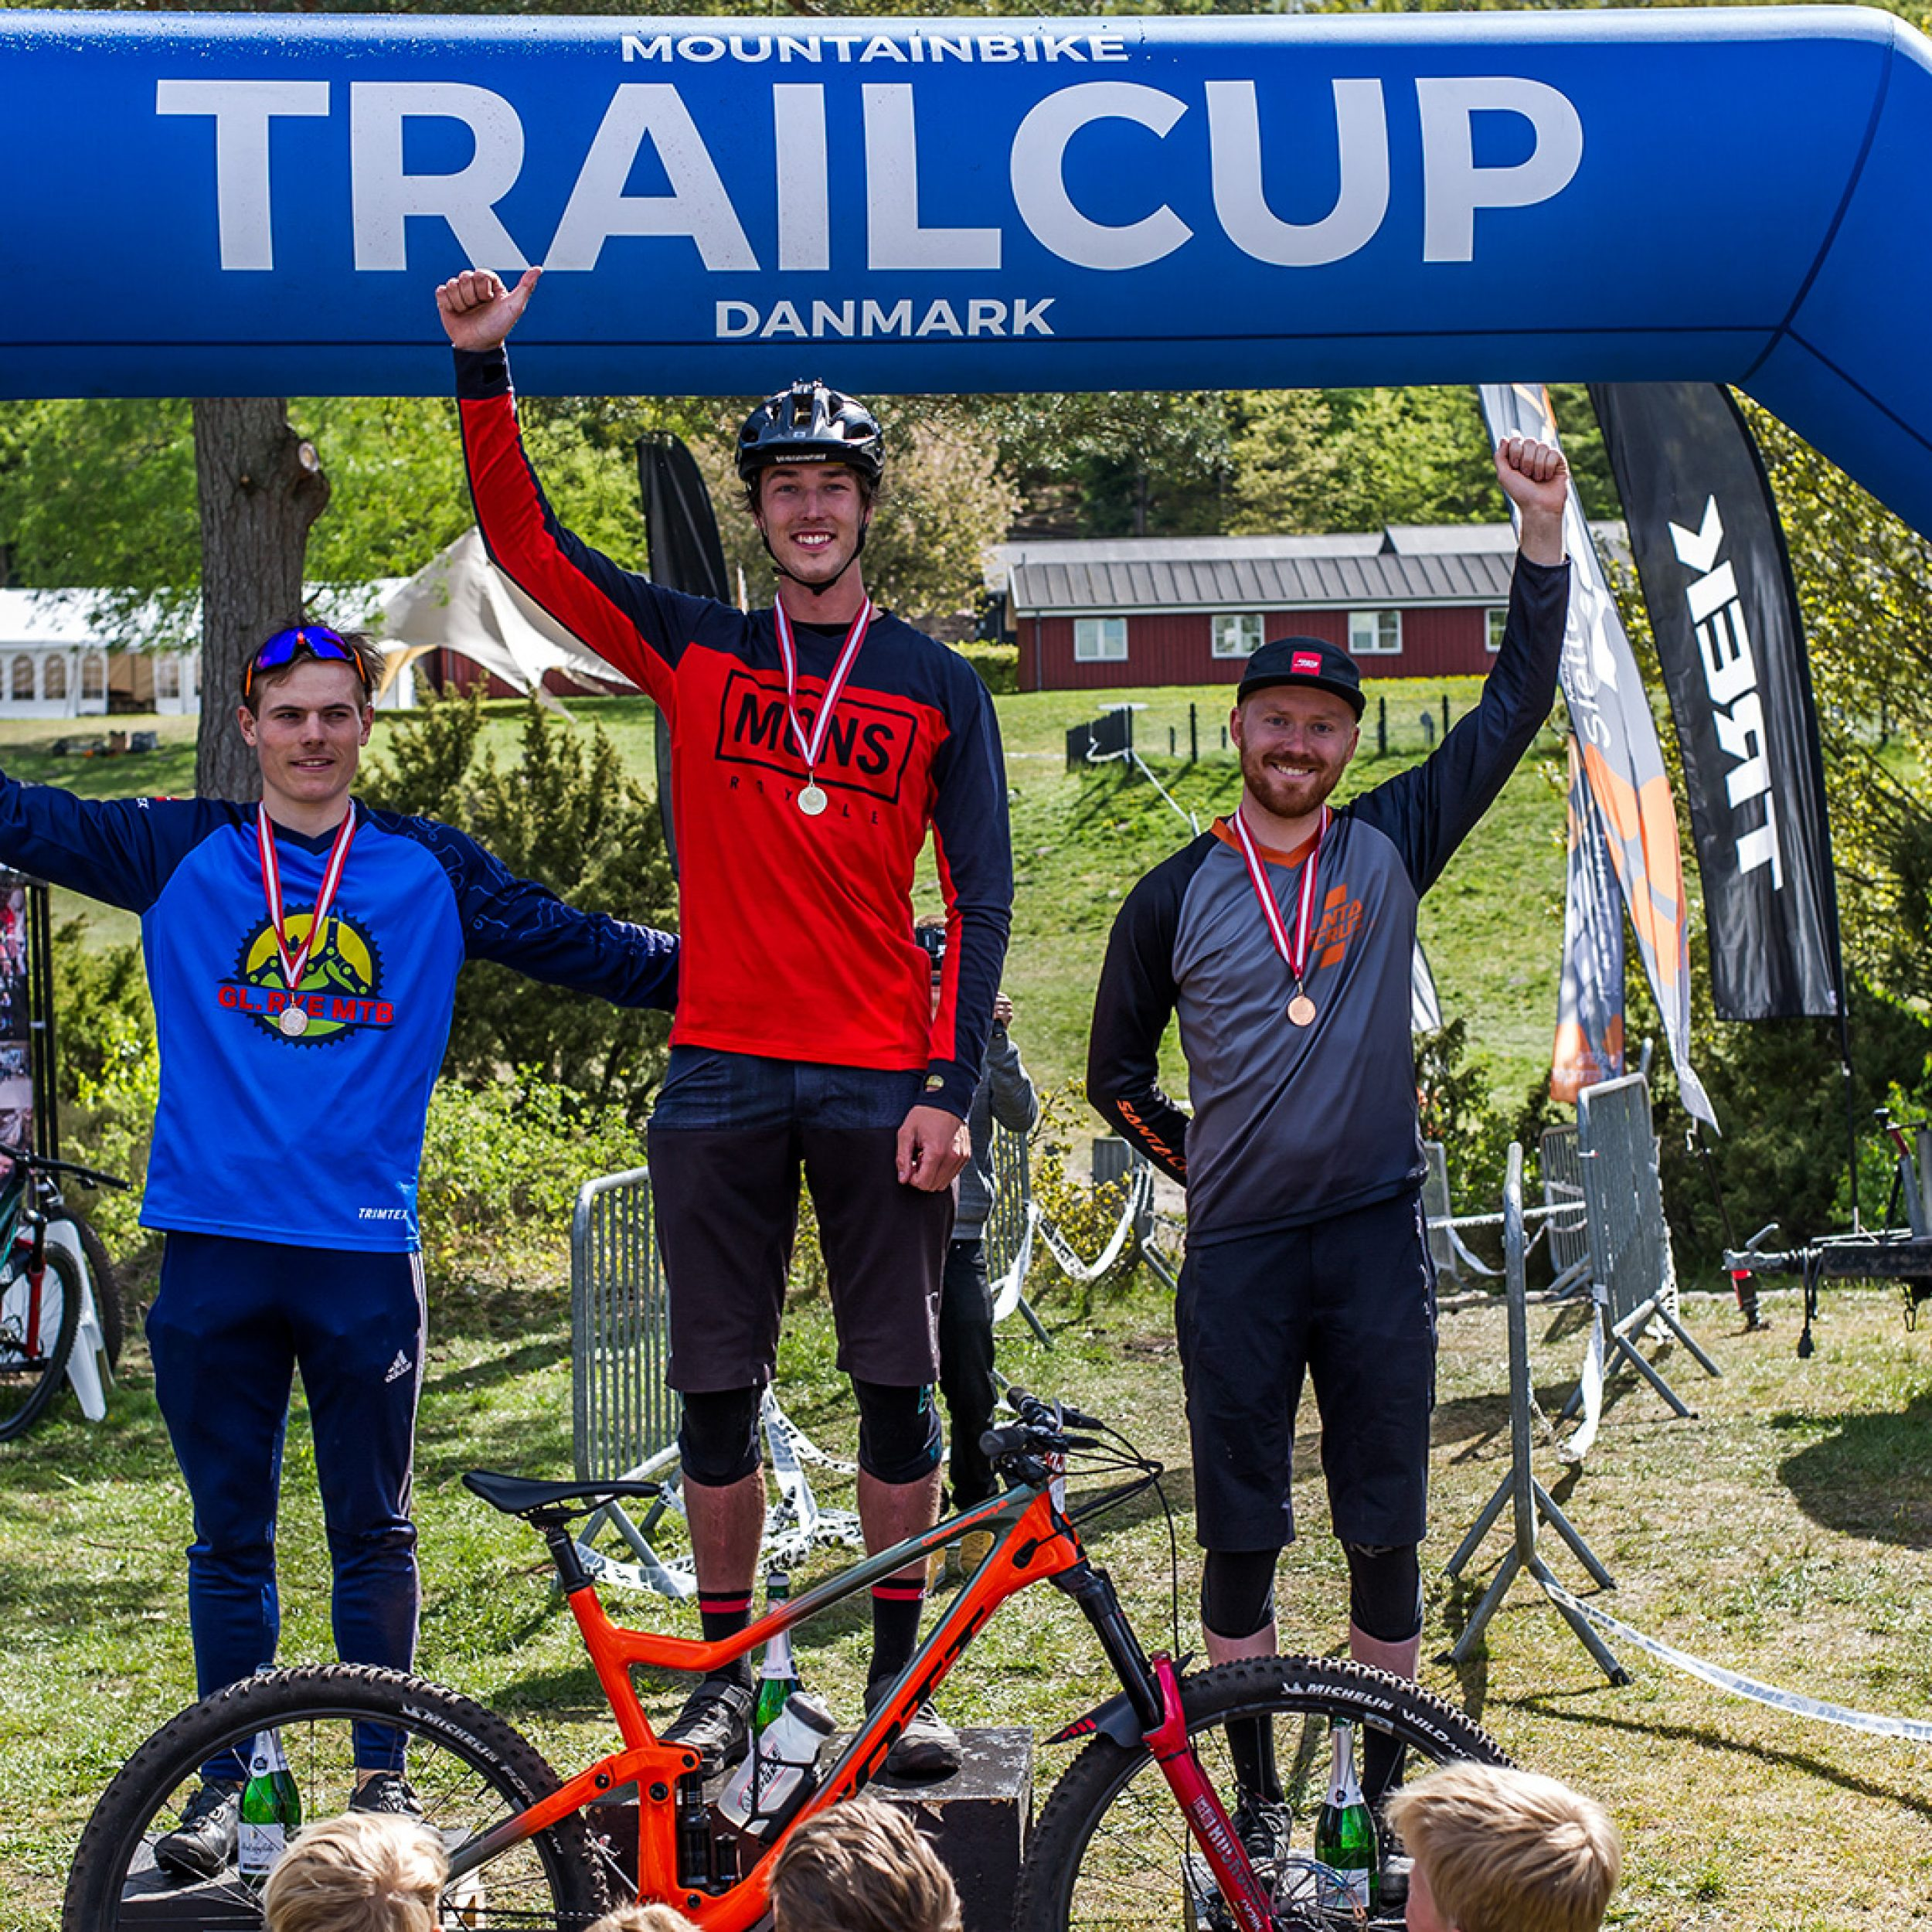 1st place at the mountainbike trailcup 2019 at Himmelbjerget.